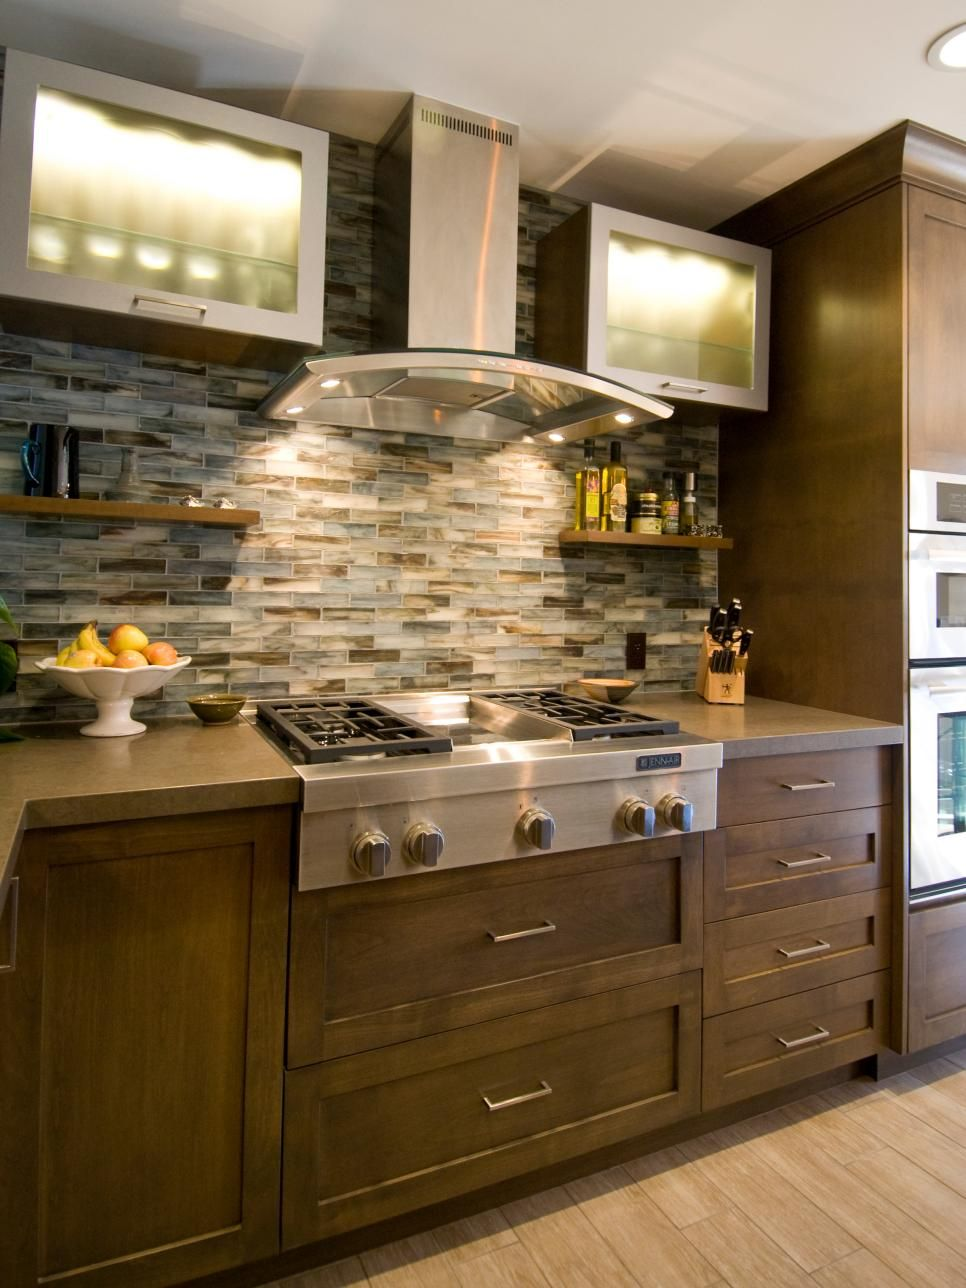 Learn about search viewer from hgtv bathroom tiles pinterest